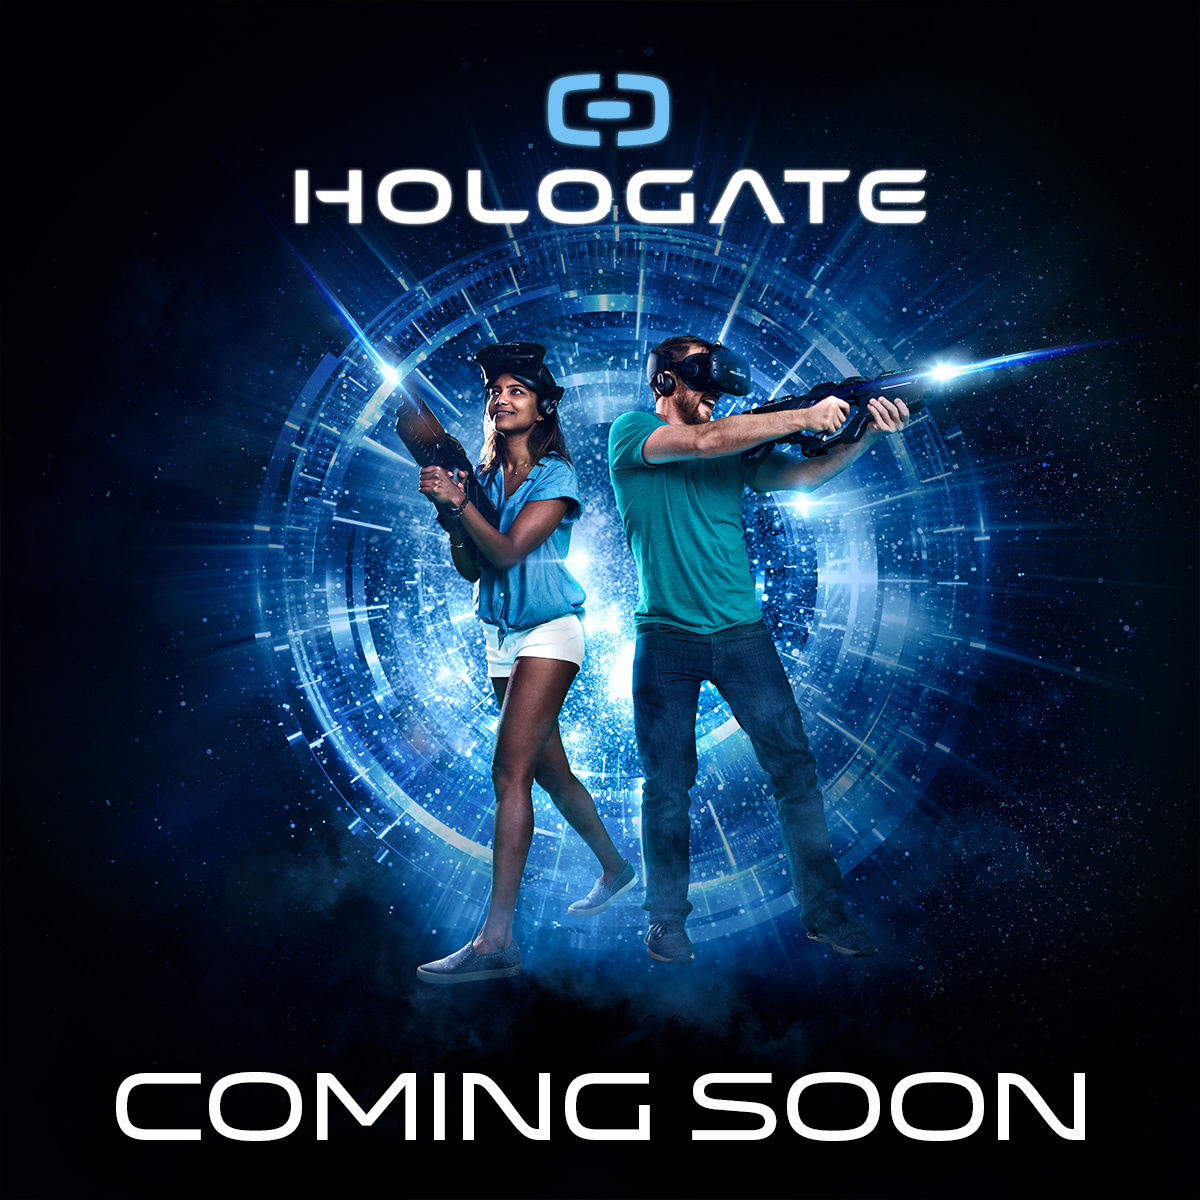 hologate-coming-soon-2